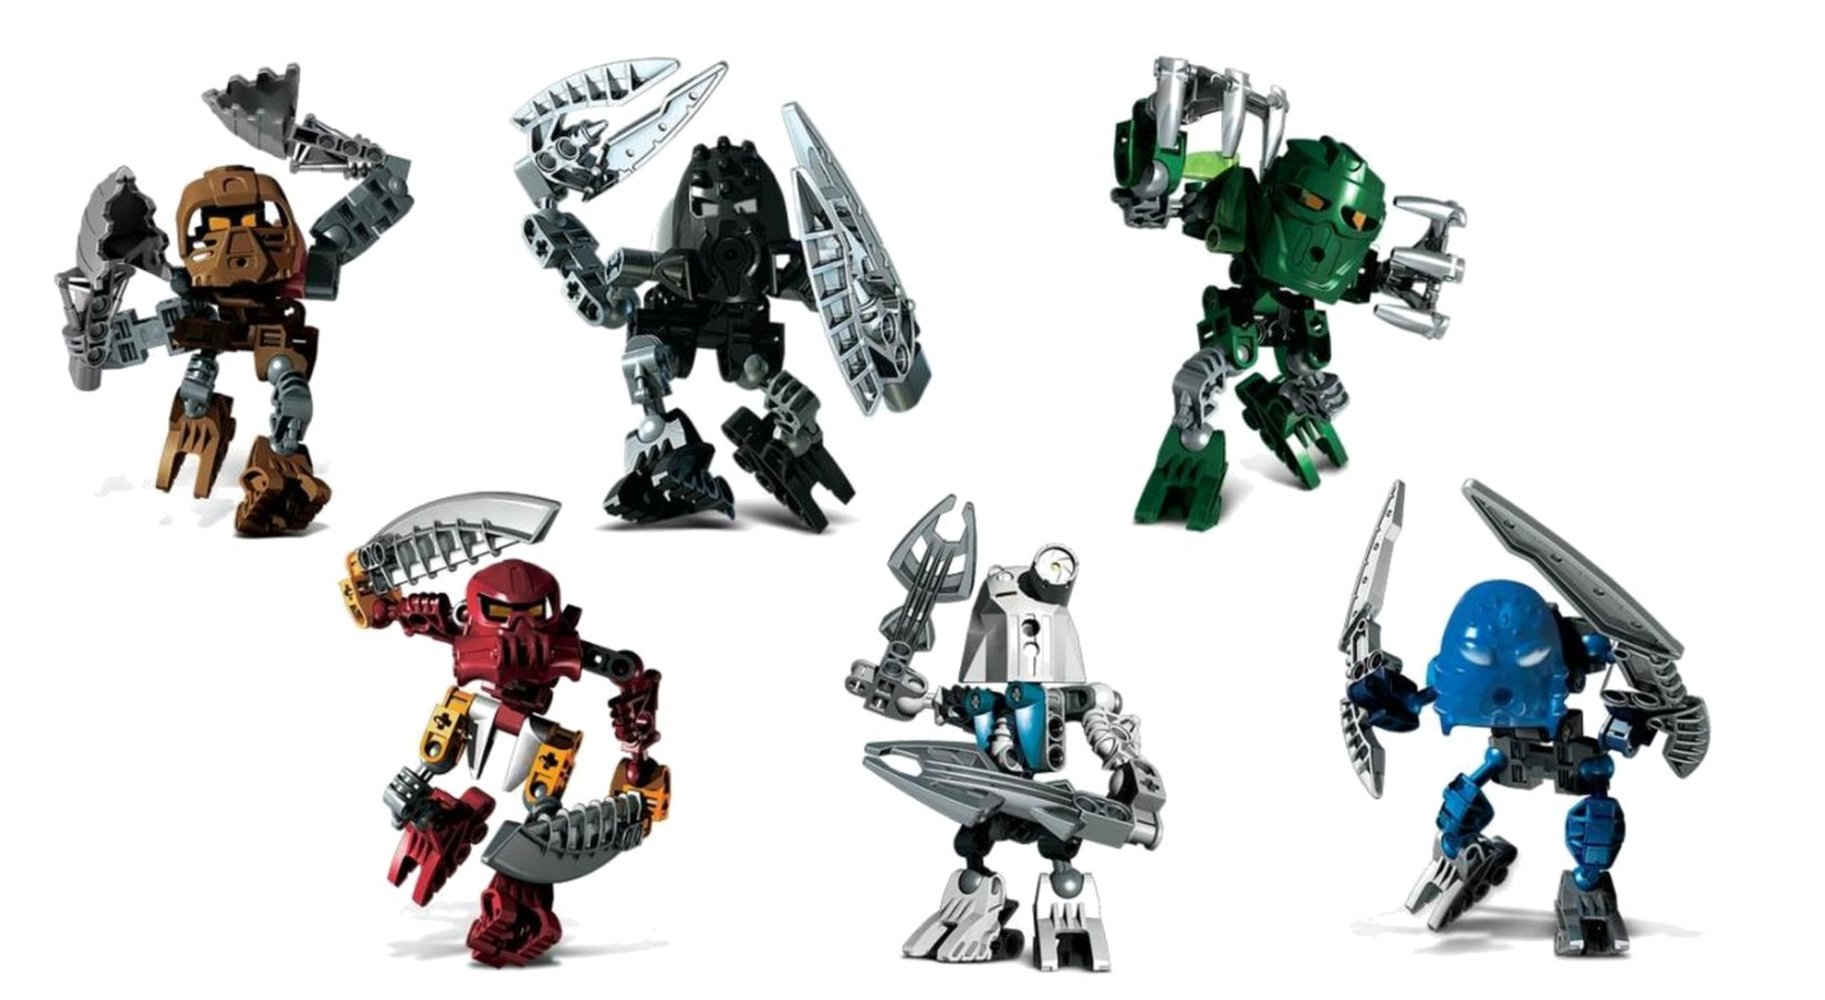 Matoran of Voya Nui Collection (8721 8722 8723 8724 8725 8726)